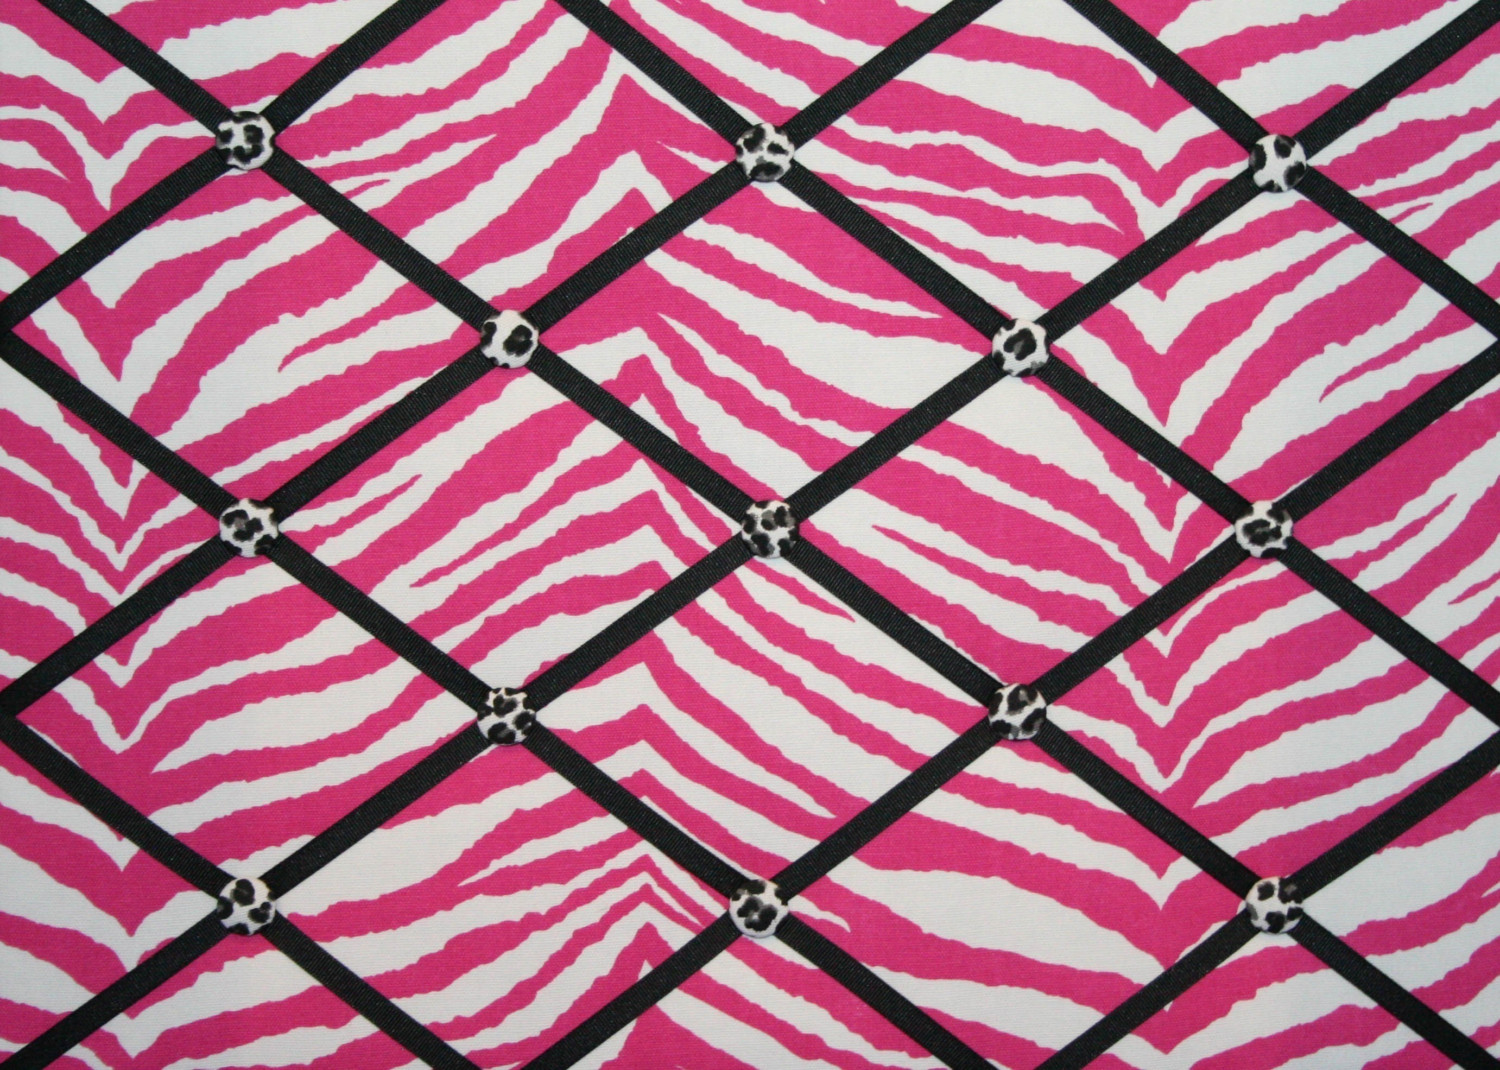 Pink and black zebra print 2 free hd wallpaper - Pink zebra wallpaper for iphone ...